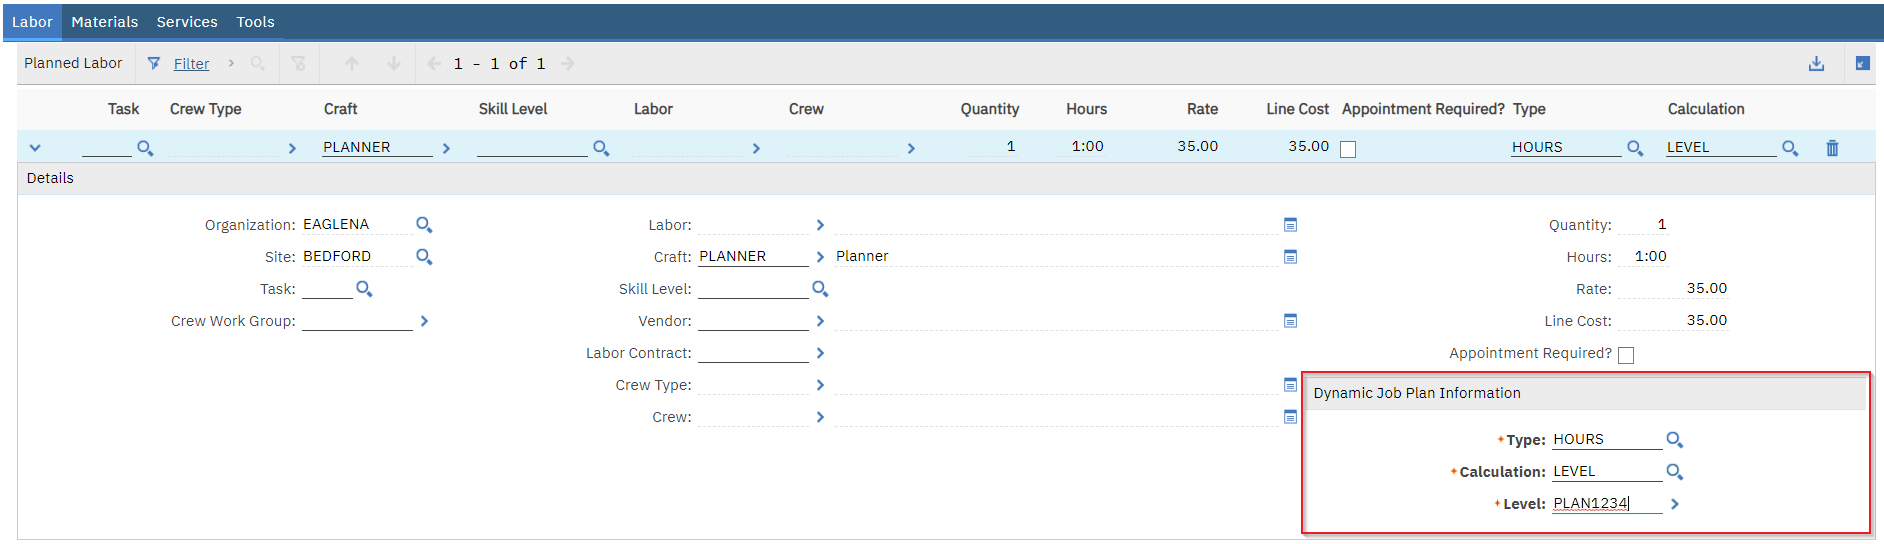 Screenshot of a level-based job plan in Maximo